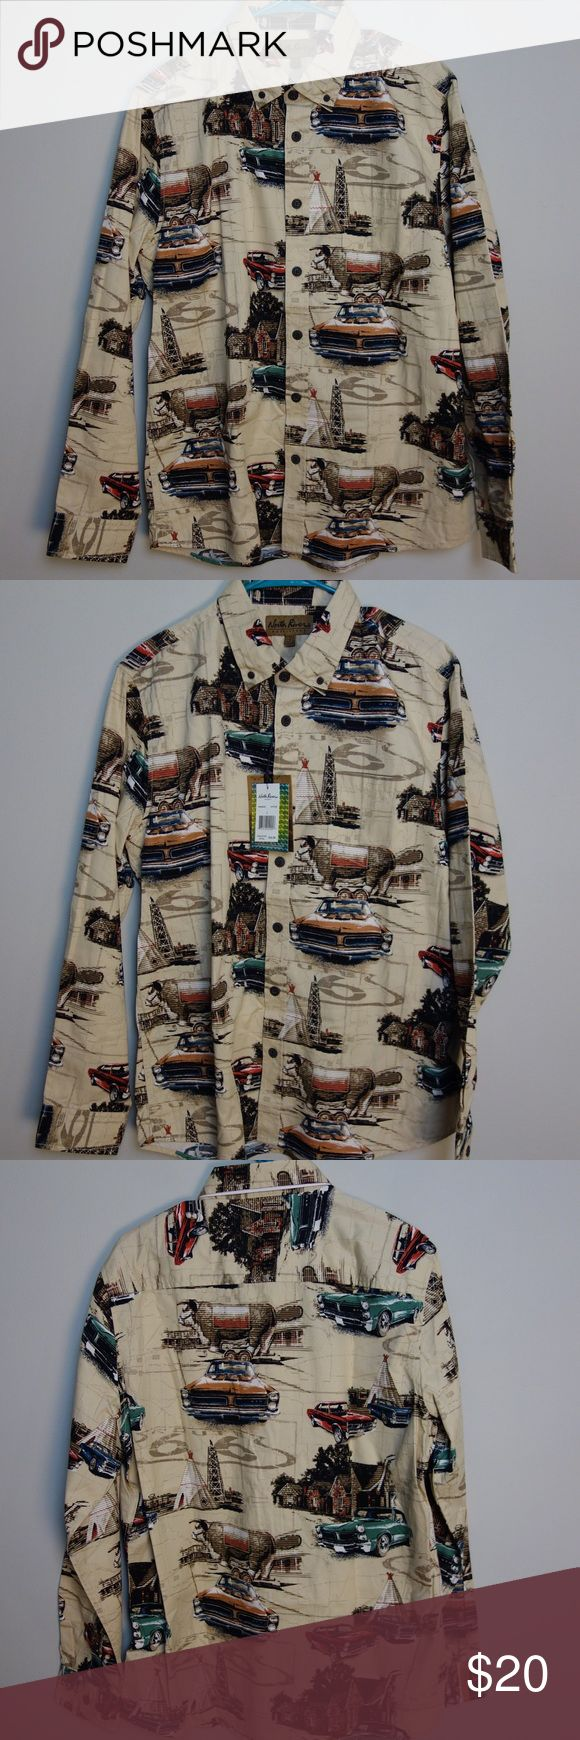 NWT Classic Car Men's Shirt NWT. North River and GM collab to make this great Route 66 theme shirt pattern featuring the iconic GOT model cars. Western images blend with Route 66 and GTOs in this fun pattern. Button down North River Shirts Casual Button Down Shirts